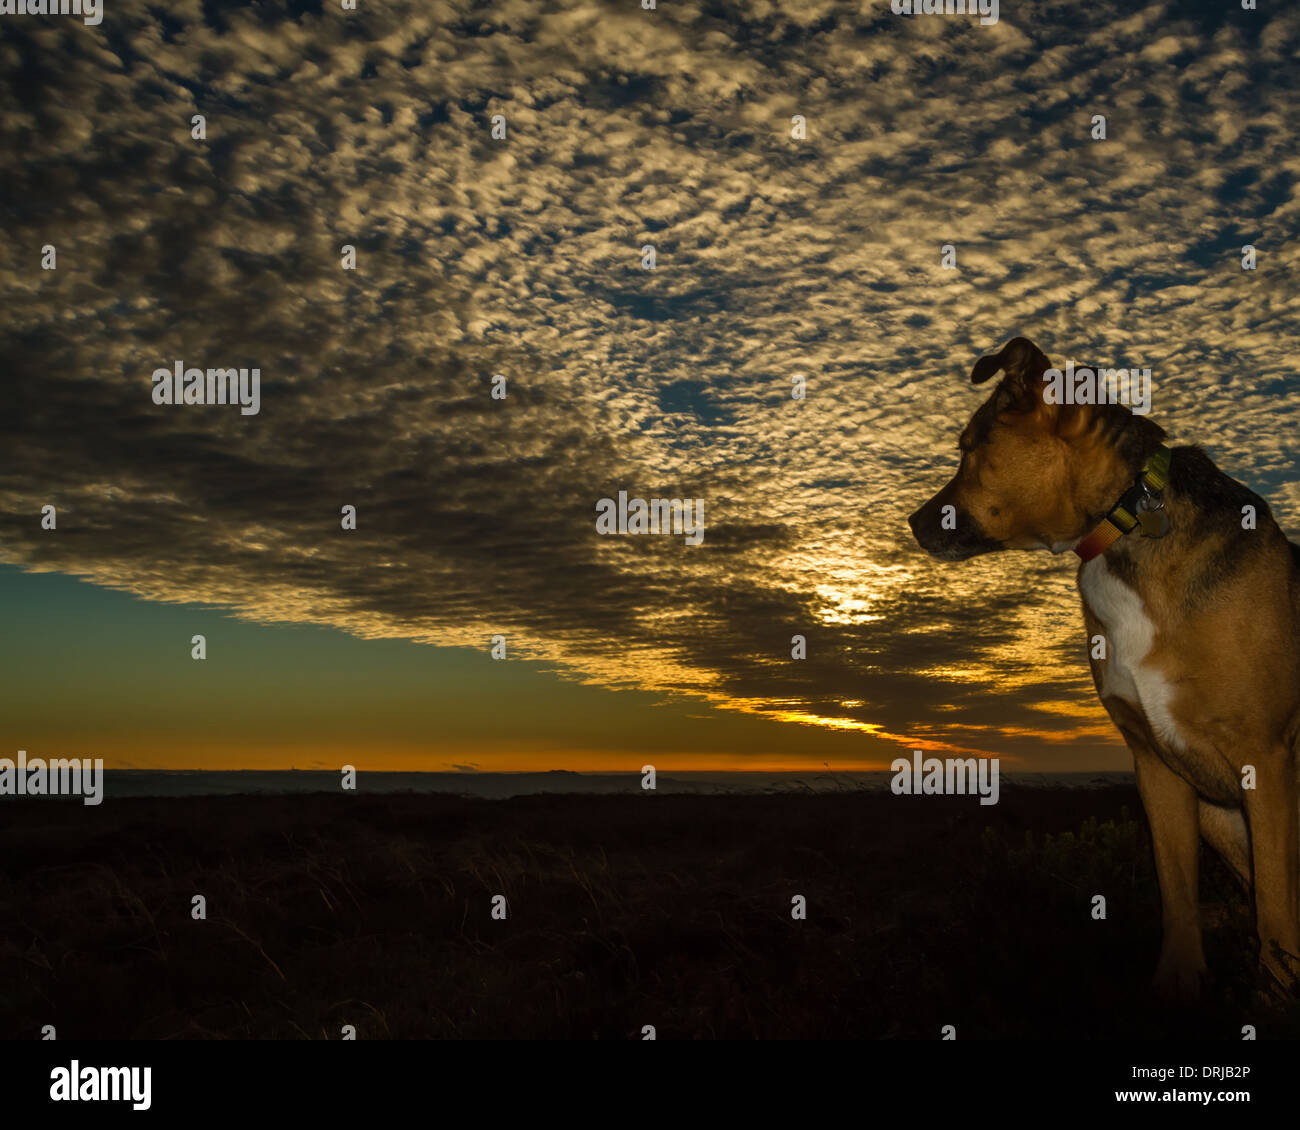 Dog enjoying the sunset on the moors, Yorkshire, UK - Stock Image